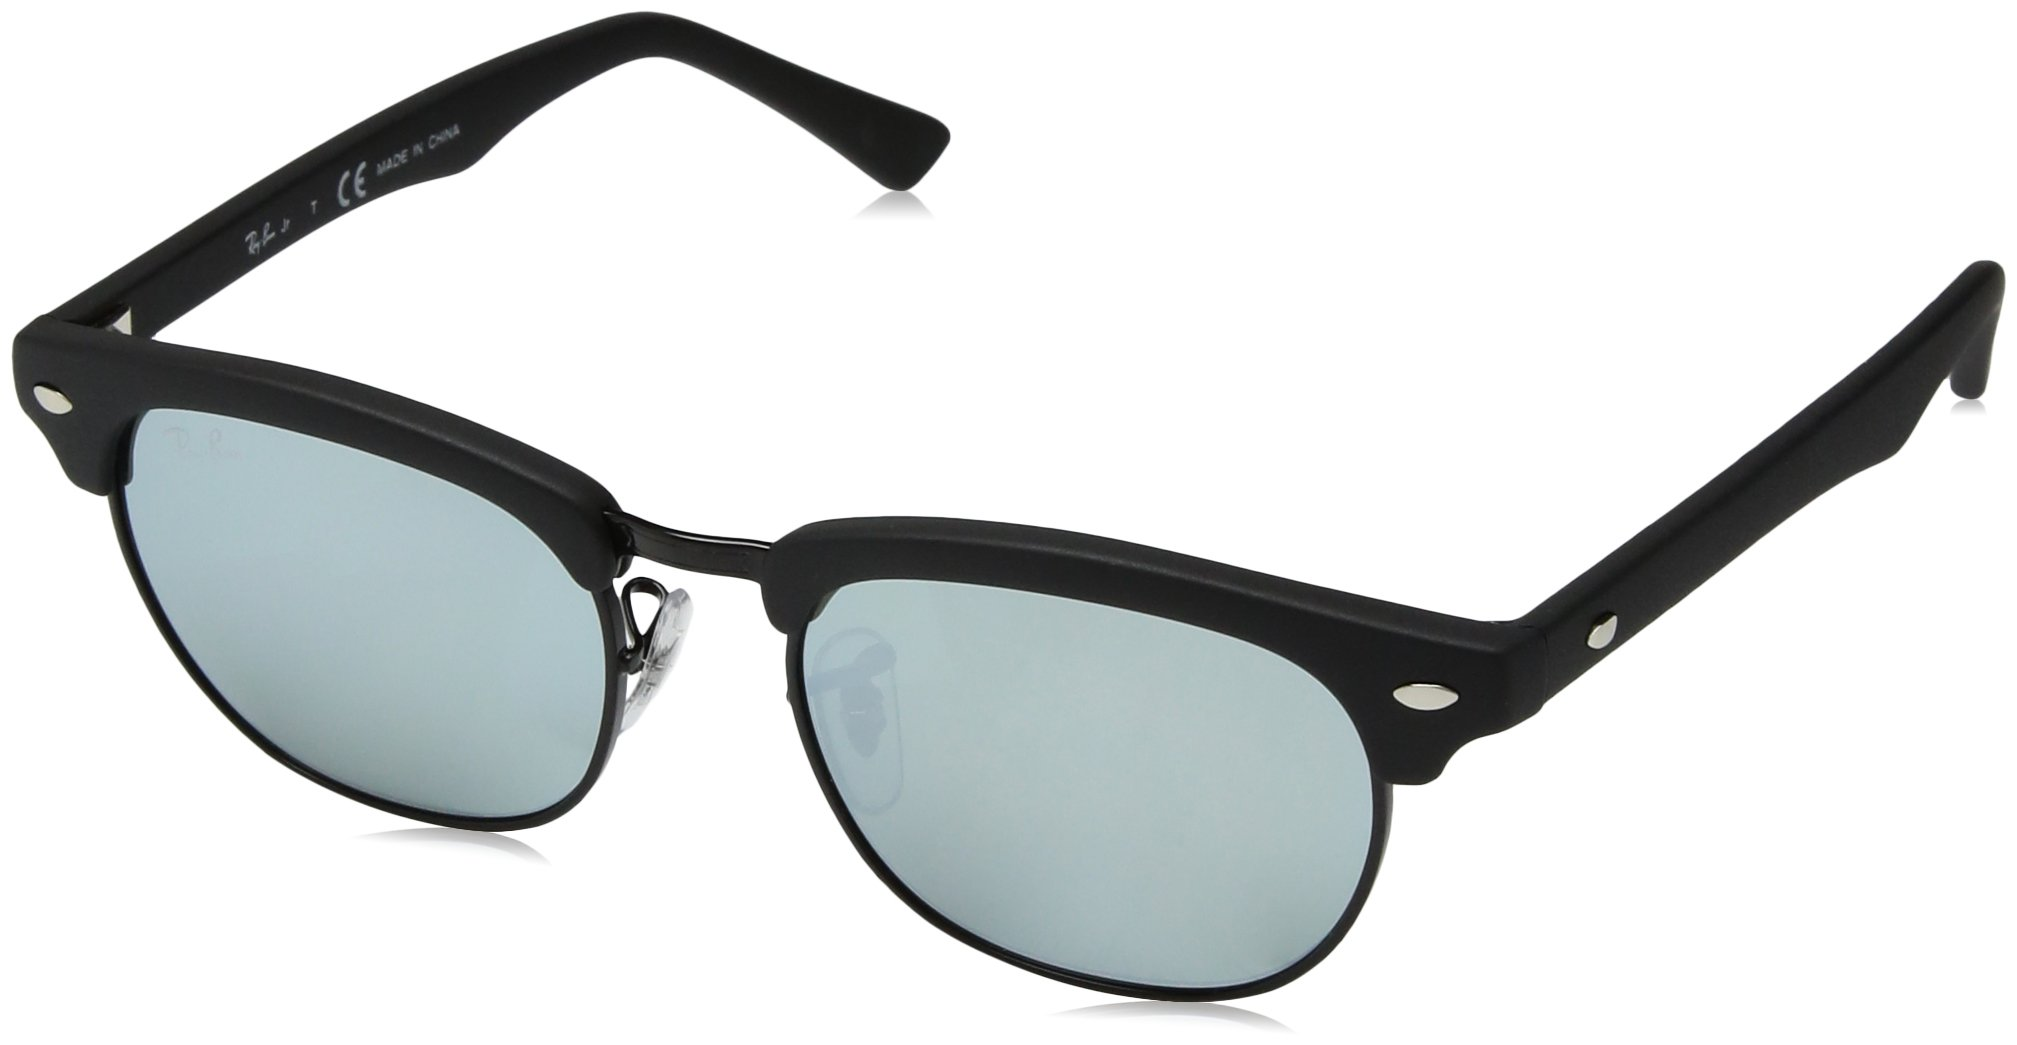 RAY-BAN JUNIOR Kids' RJ9050S Clubmaster Kids Square Sunglasses, Matte Black/Grey Flash, 47 mm by RAY-BAN JUNIOR